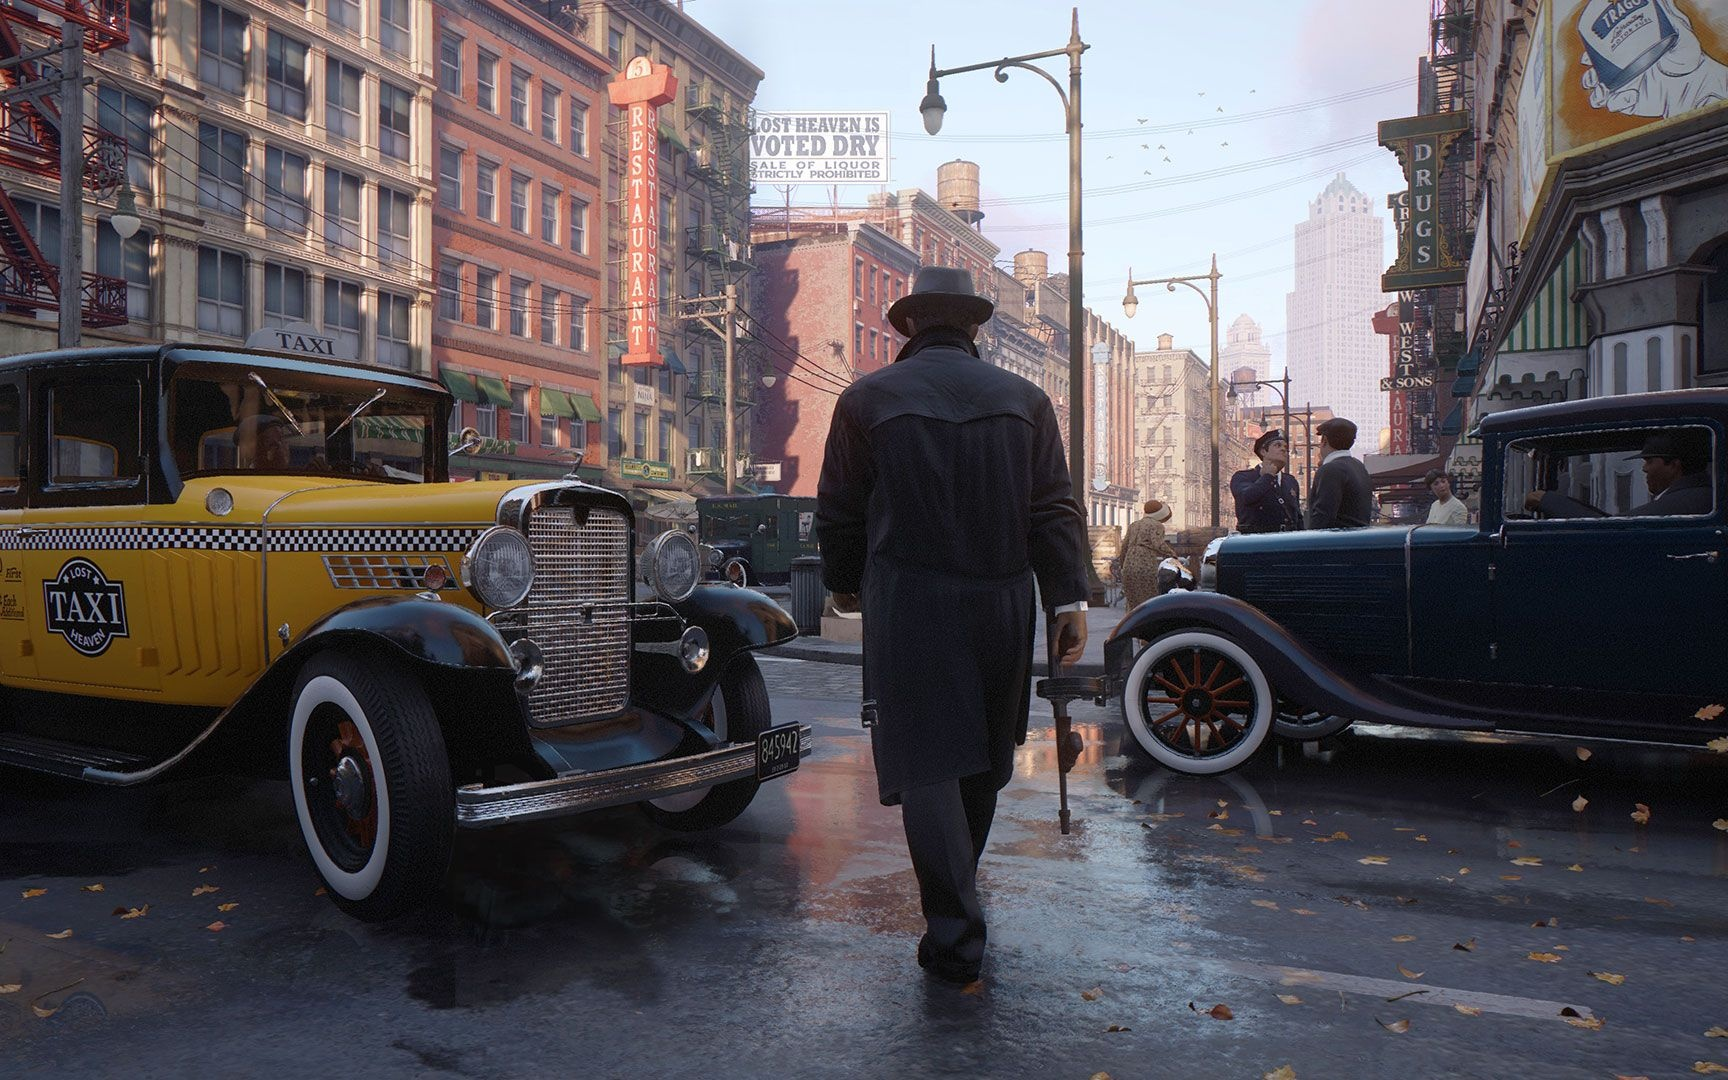 'Mafia: Definitive Edition' is delayed until September due to COVID-19